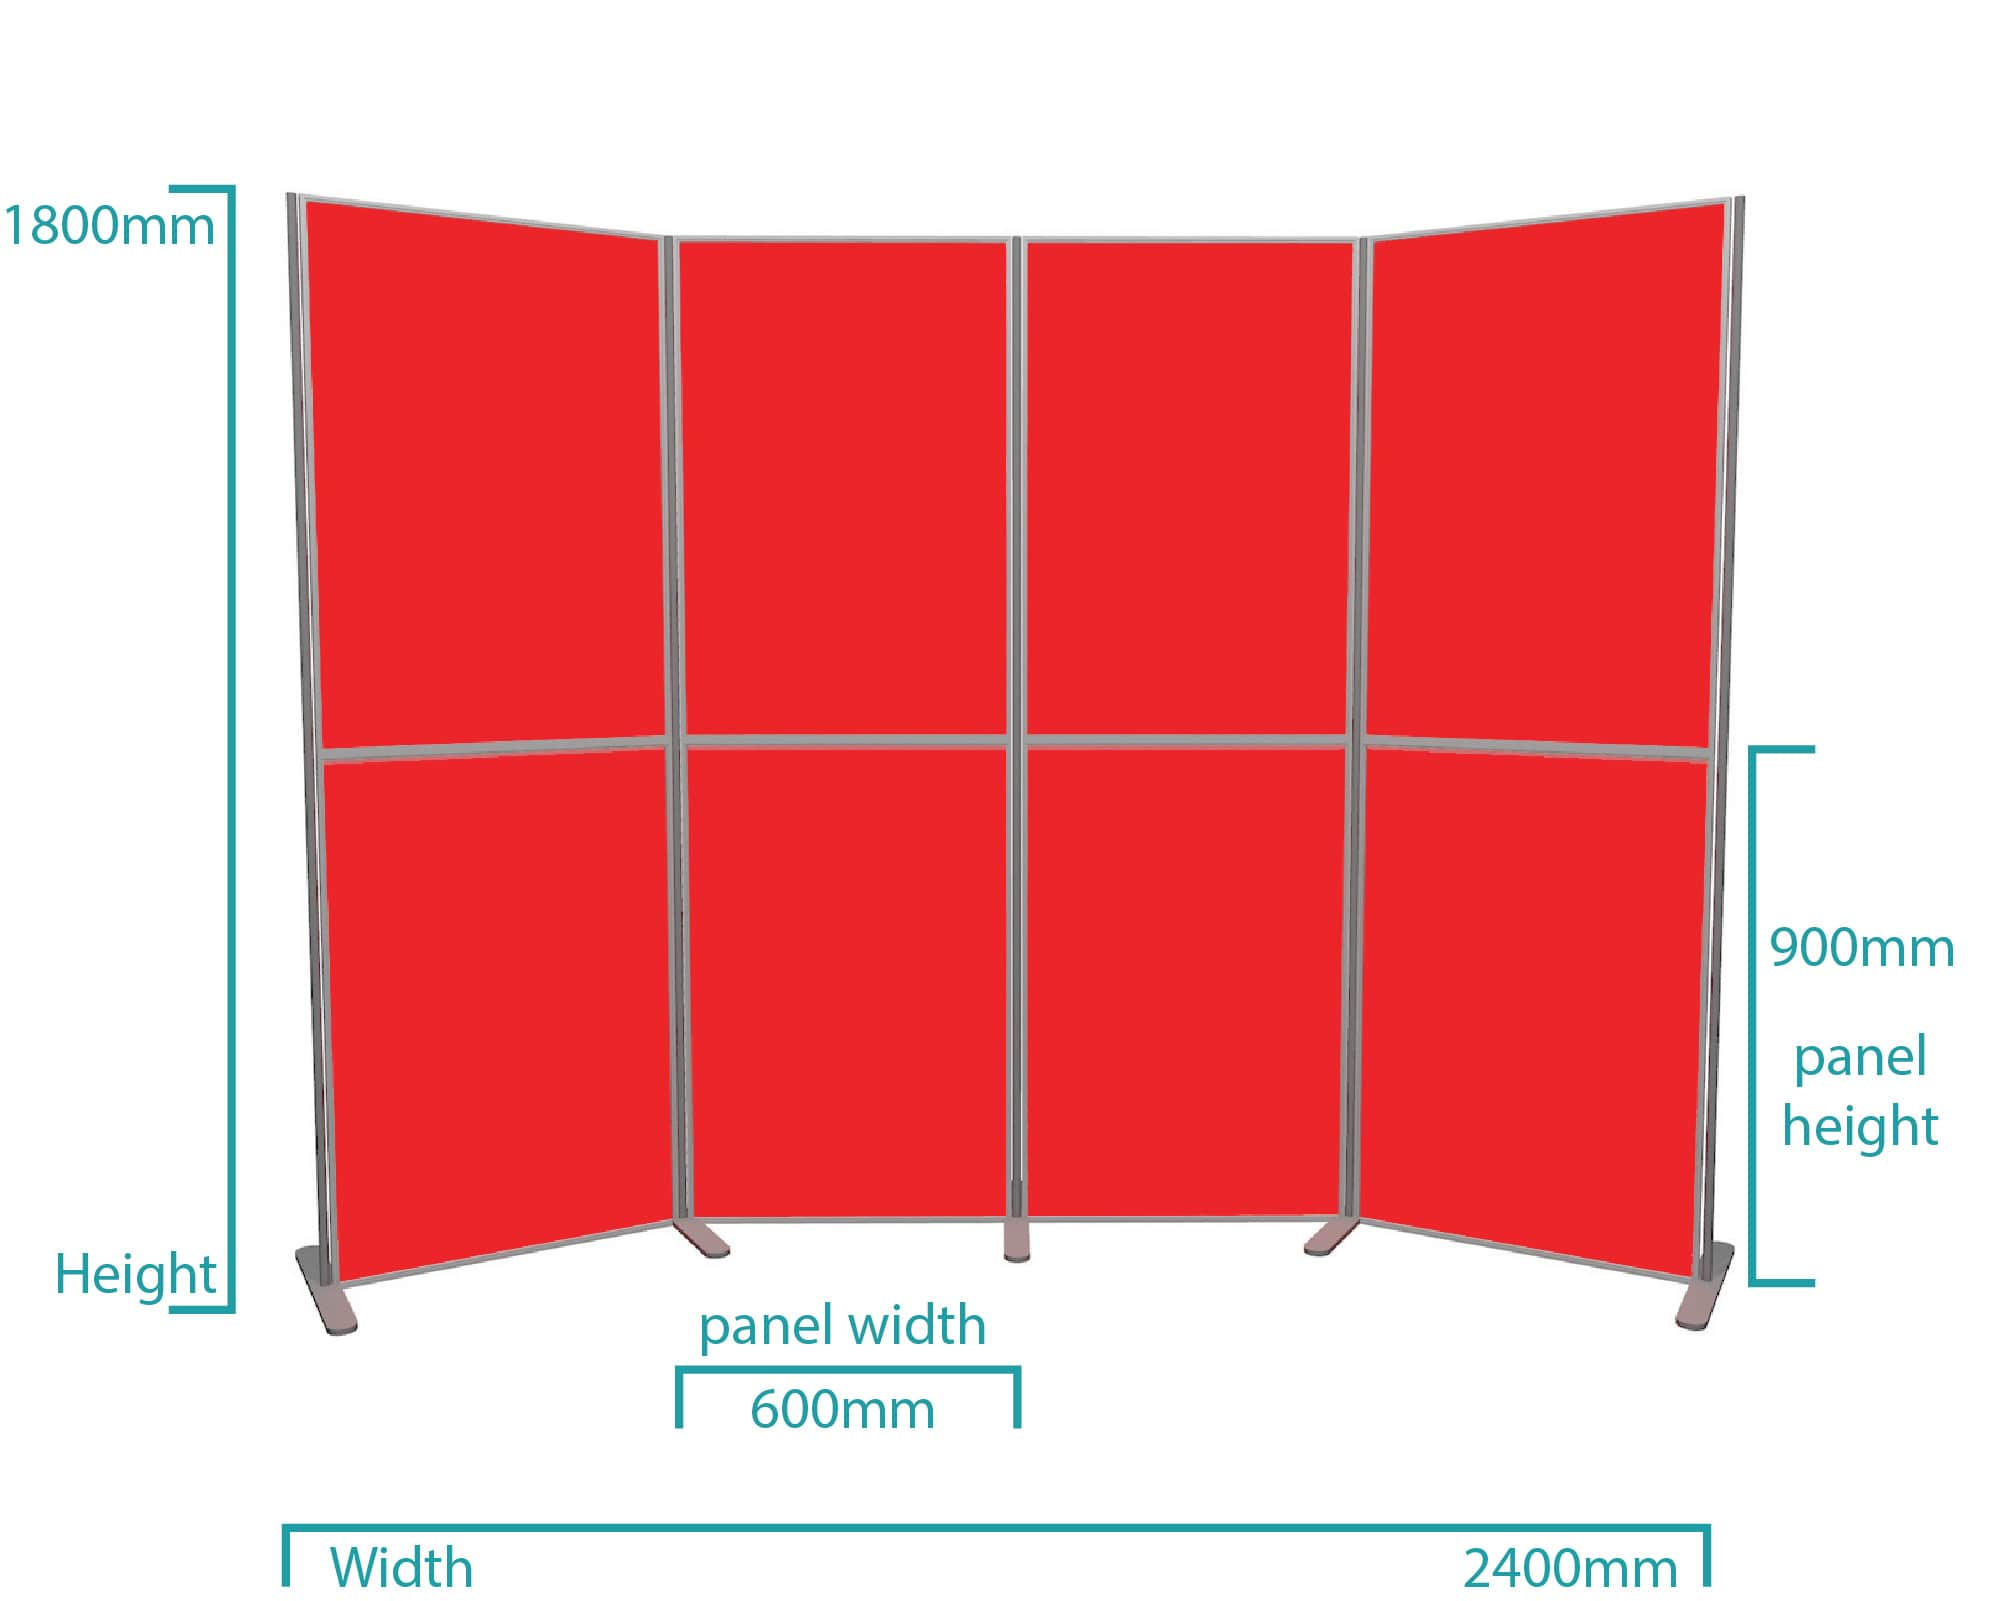 8 panel portrait lightweight pole and panel display board kit dimensions